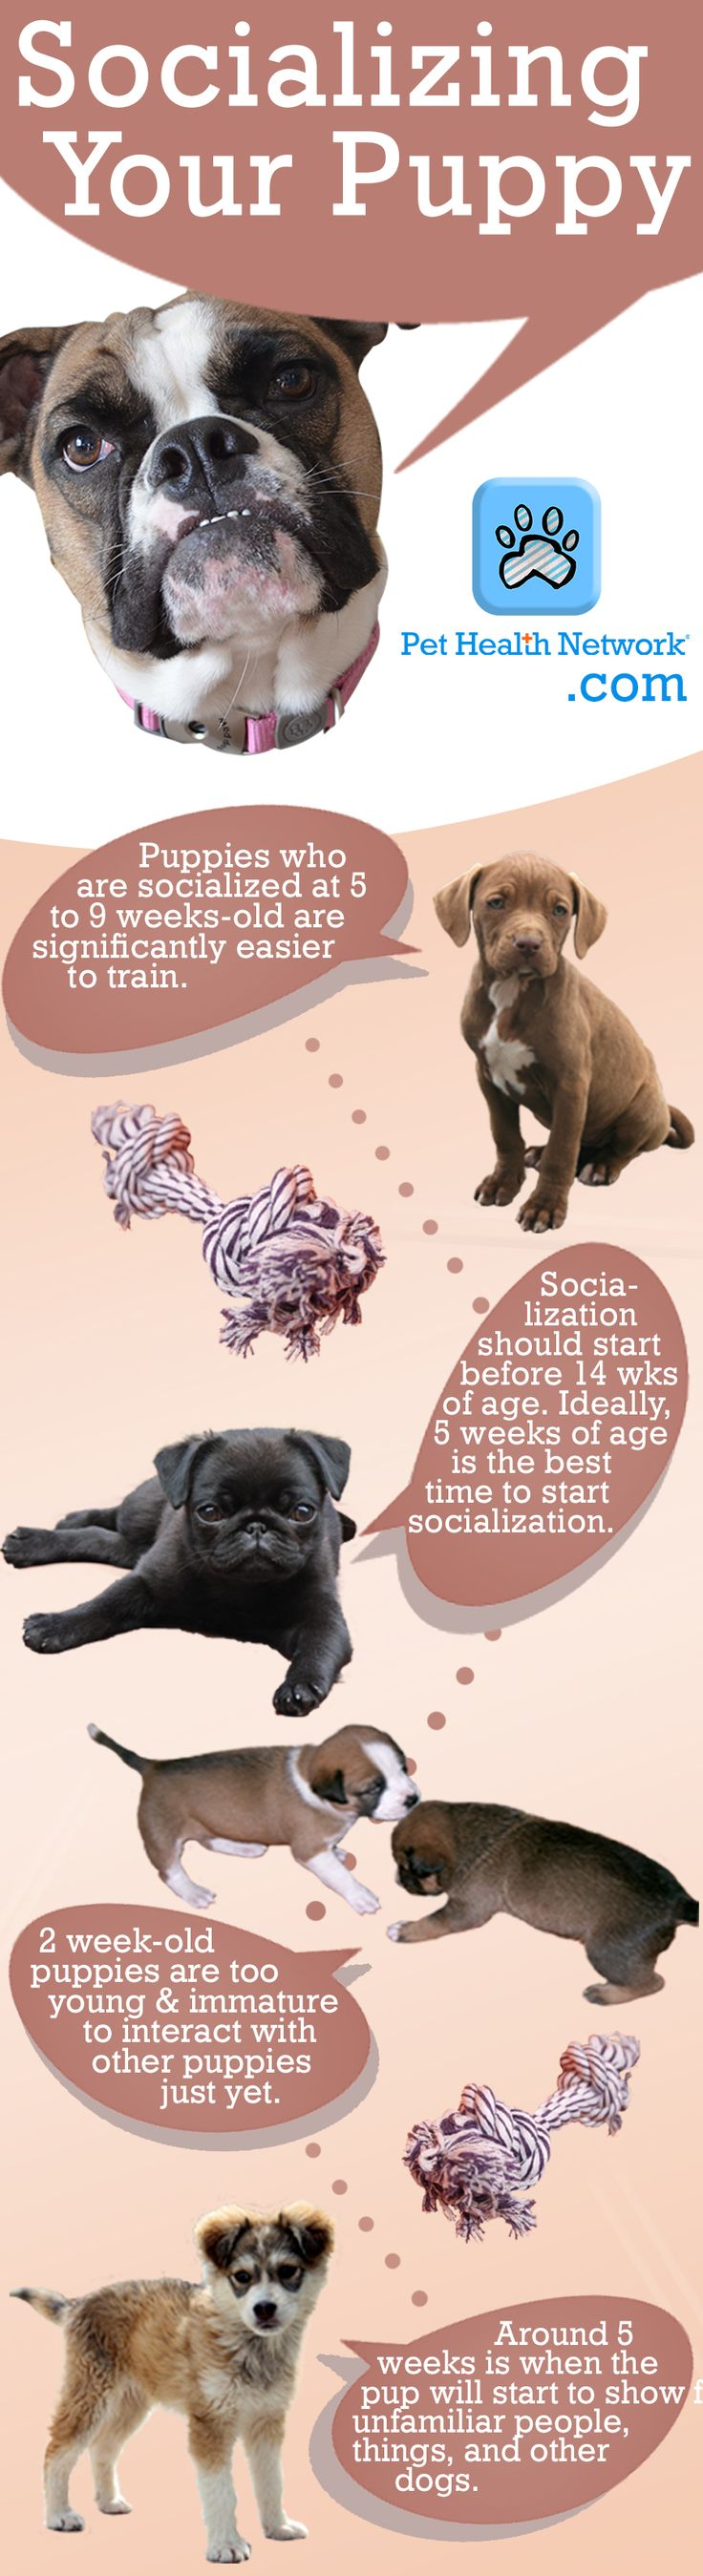 Socializing Your Pup In The Early Stages This One Is Helpful